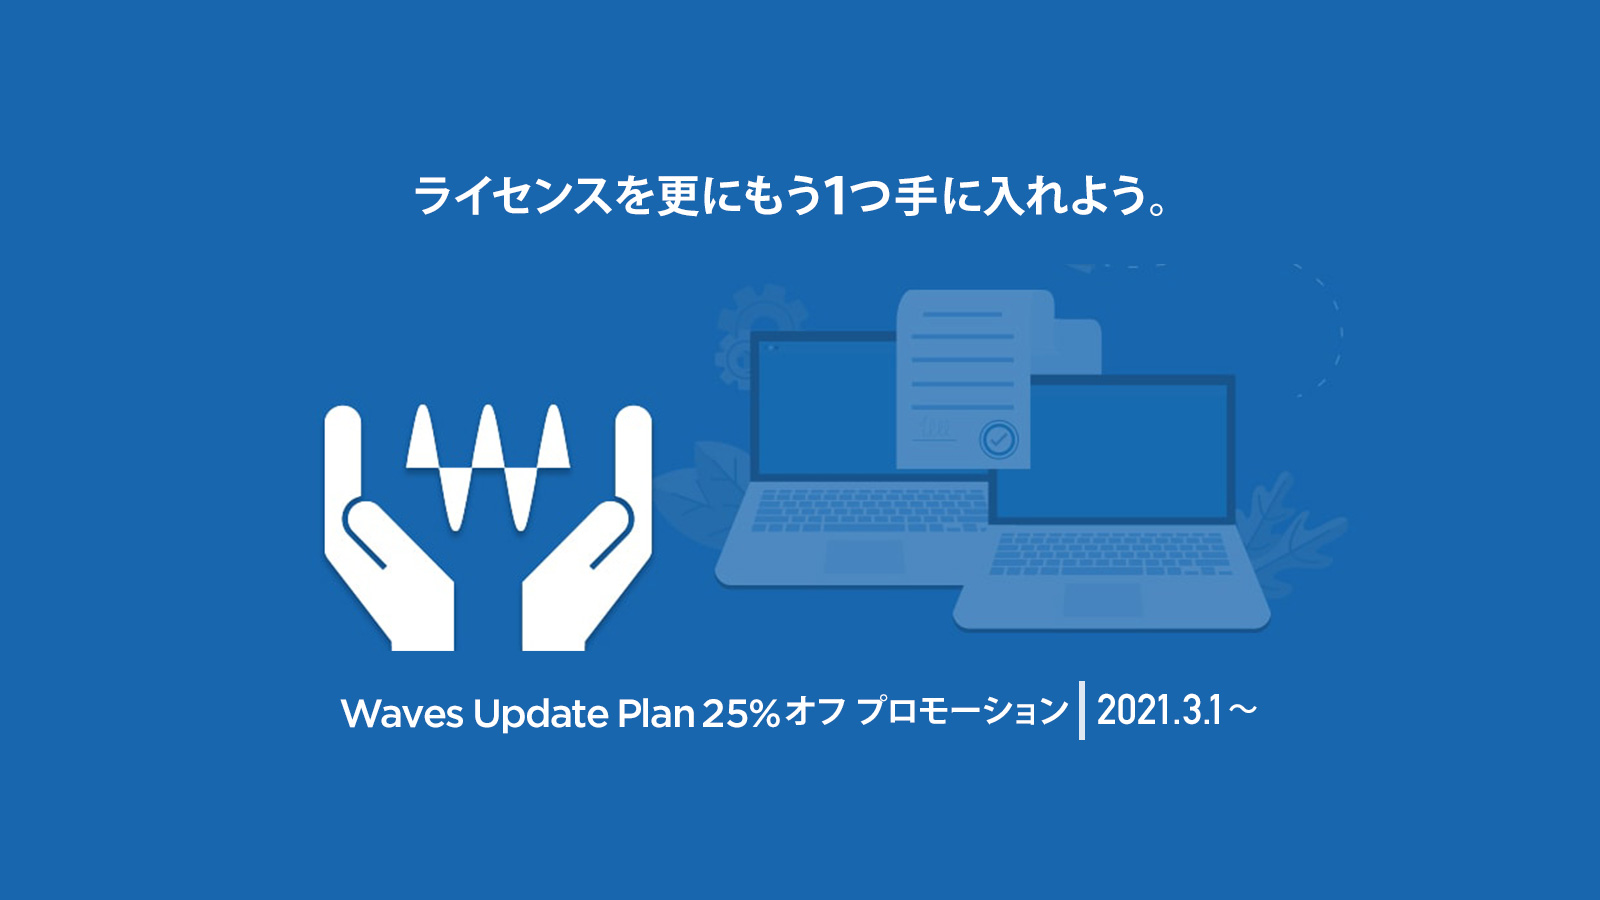 Waves Update Plan(WUP) 25%オフ プロモーション